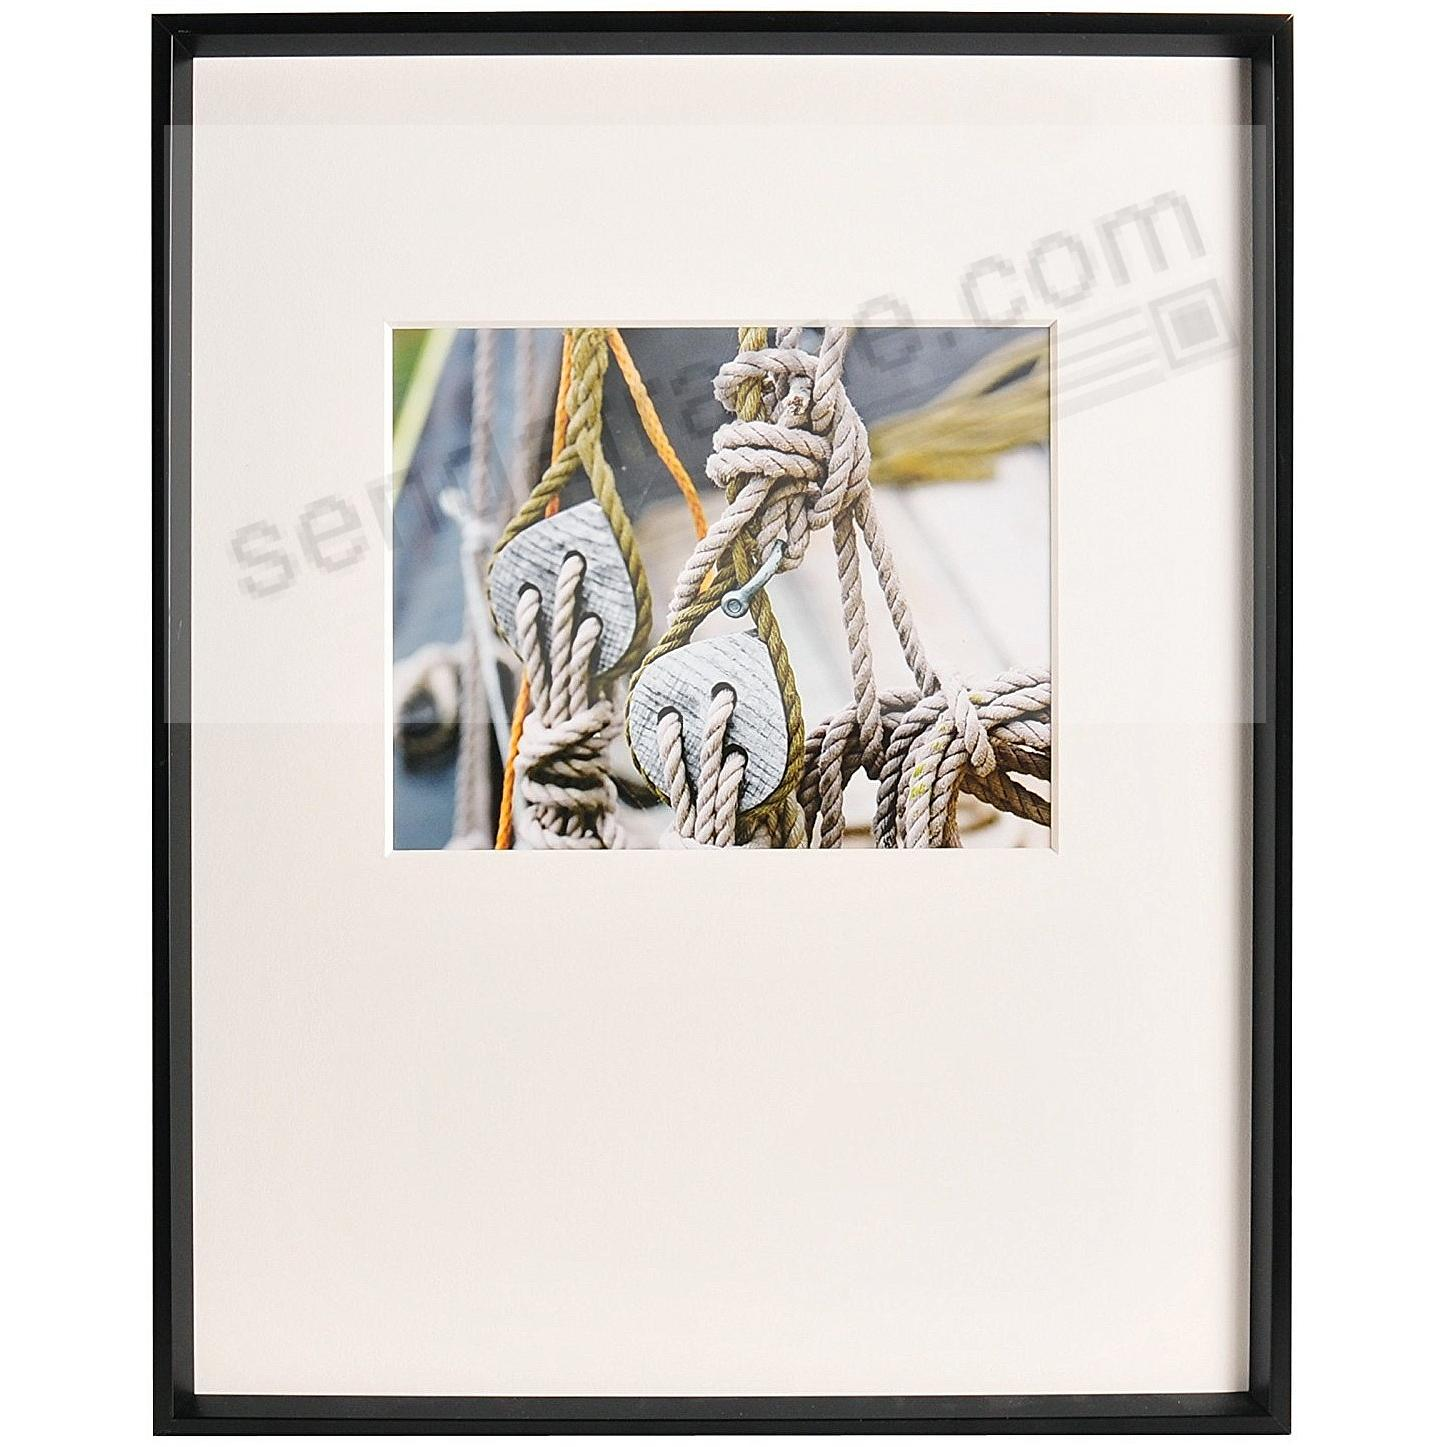 GALLERY matted Matte-Black metallic frame 16x20/10x8 from ARTCARE® by Nielsen®